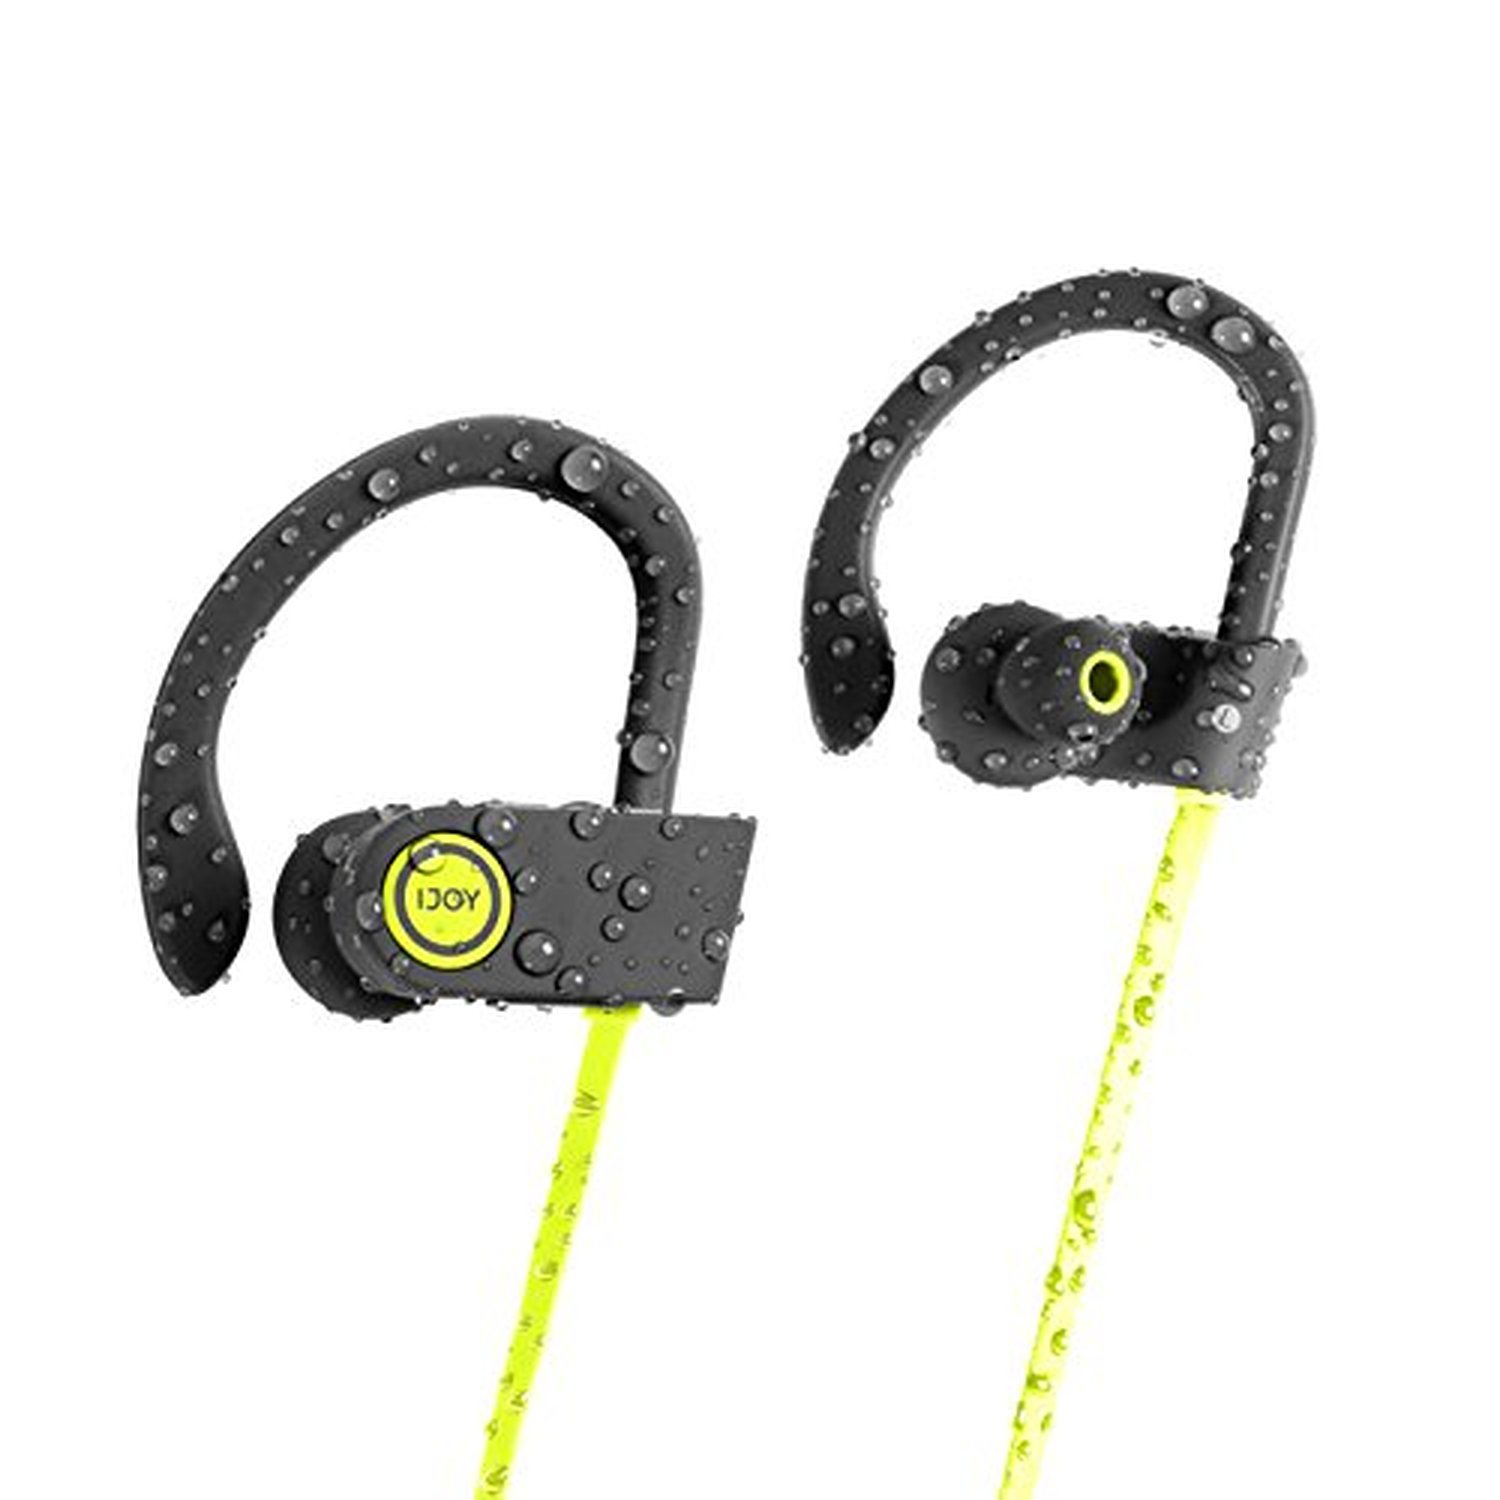 newest cd4f9 dfecb iJoy FS IPX7 Premium Sport Bluetooth Waterproof Earbuds with Noise  Cancellation Technology